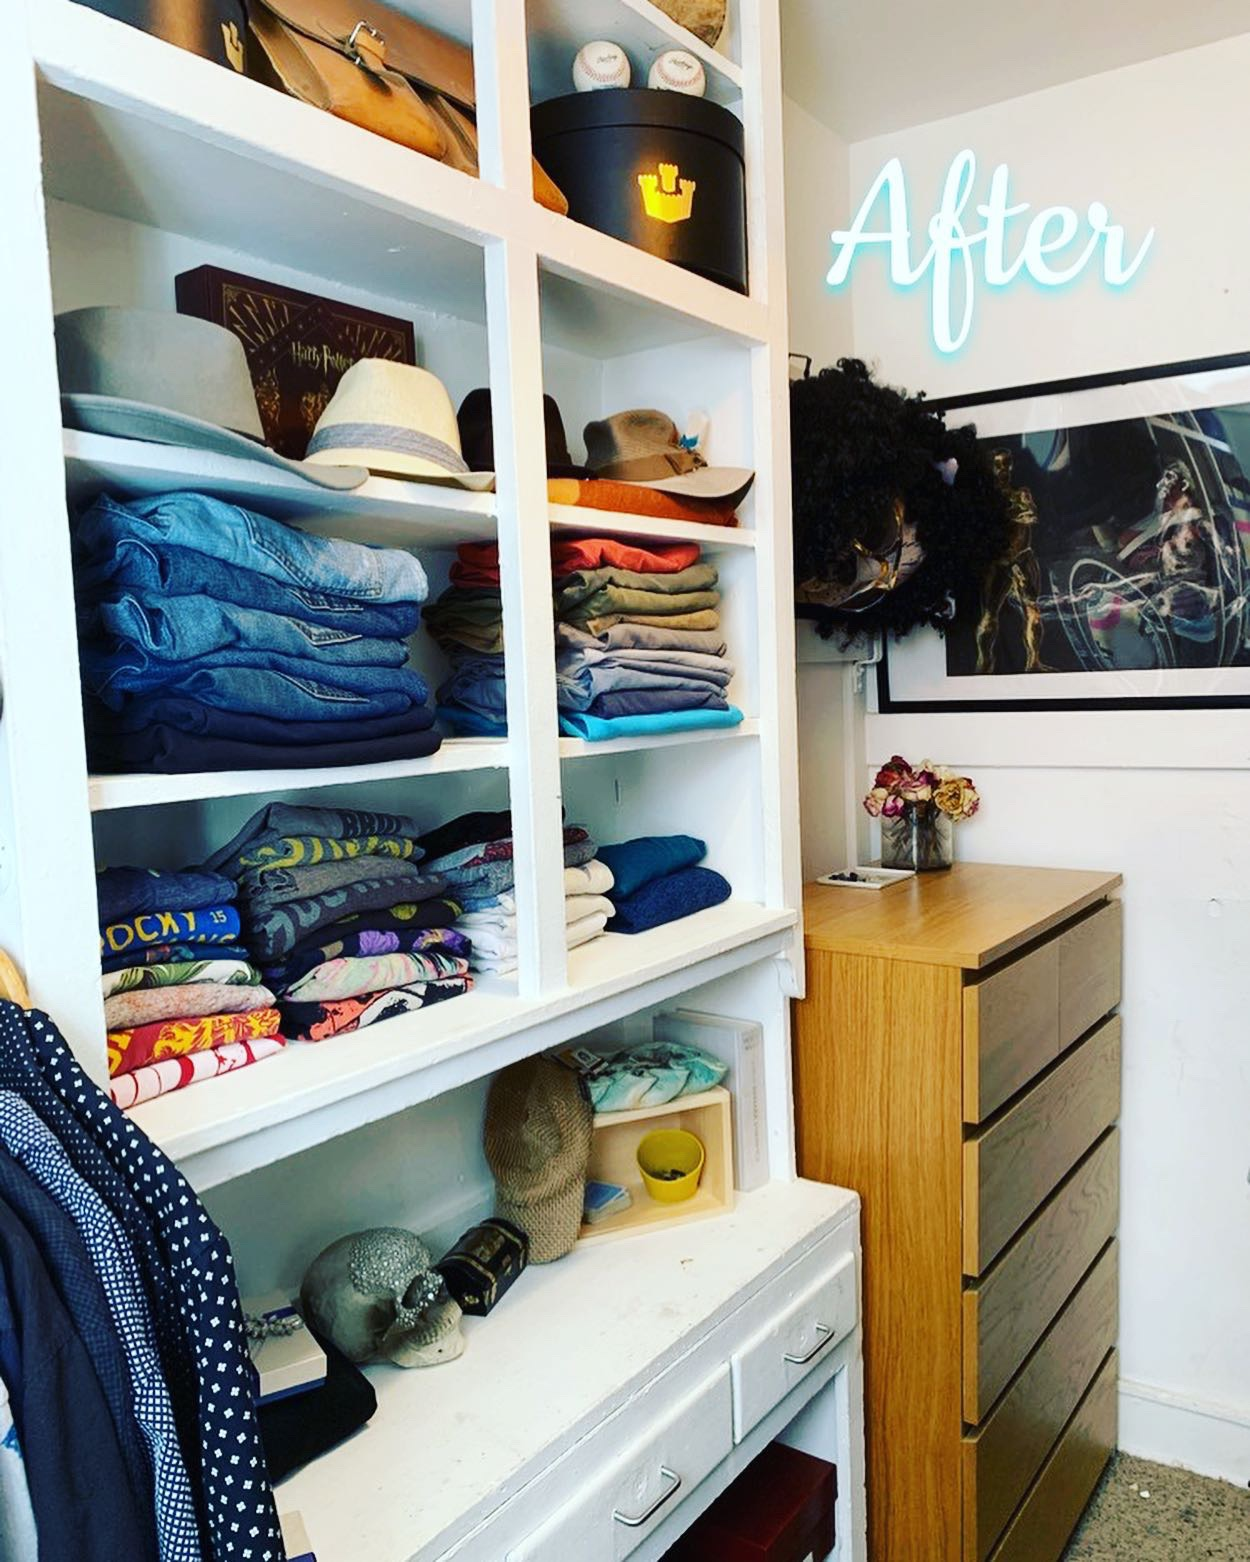 Closet Refresh, Capitol Hill - This was such a fun closet makeover! My client needed a freshen up for himself and his husband. Believe it or not, they SHARE A WARDROBE! If that isn't #marriagegoals, I don't know what is😂 These two have glorious clothes, and the coolest apartment in one of Denver's historic districts. They also live part of the year in Aspen, CO and needed a system that was easy and efficient for moving their clothes twice a year. The built-ins are divine, and the tall ceilings make this closet bright and cheerful. My clients had keepsakes and memorabilia to display as well, which adds the the charm of this closet. This freshen up was fun AND effective. Now, if I could just borrow from their costume trunk....